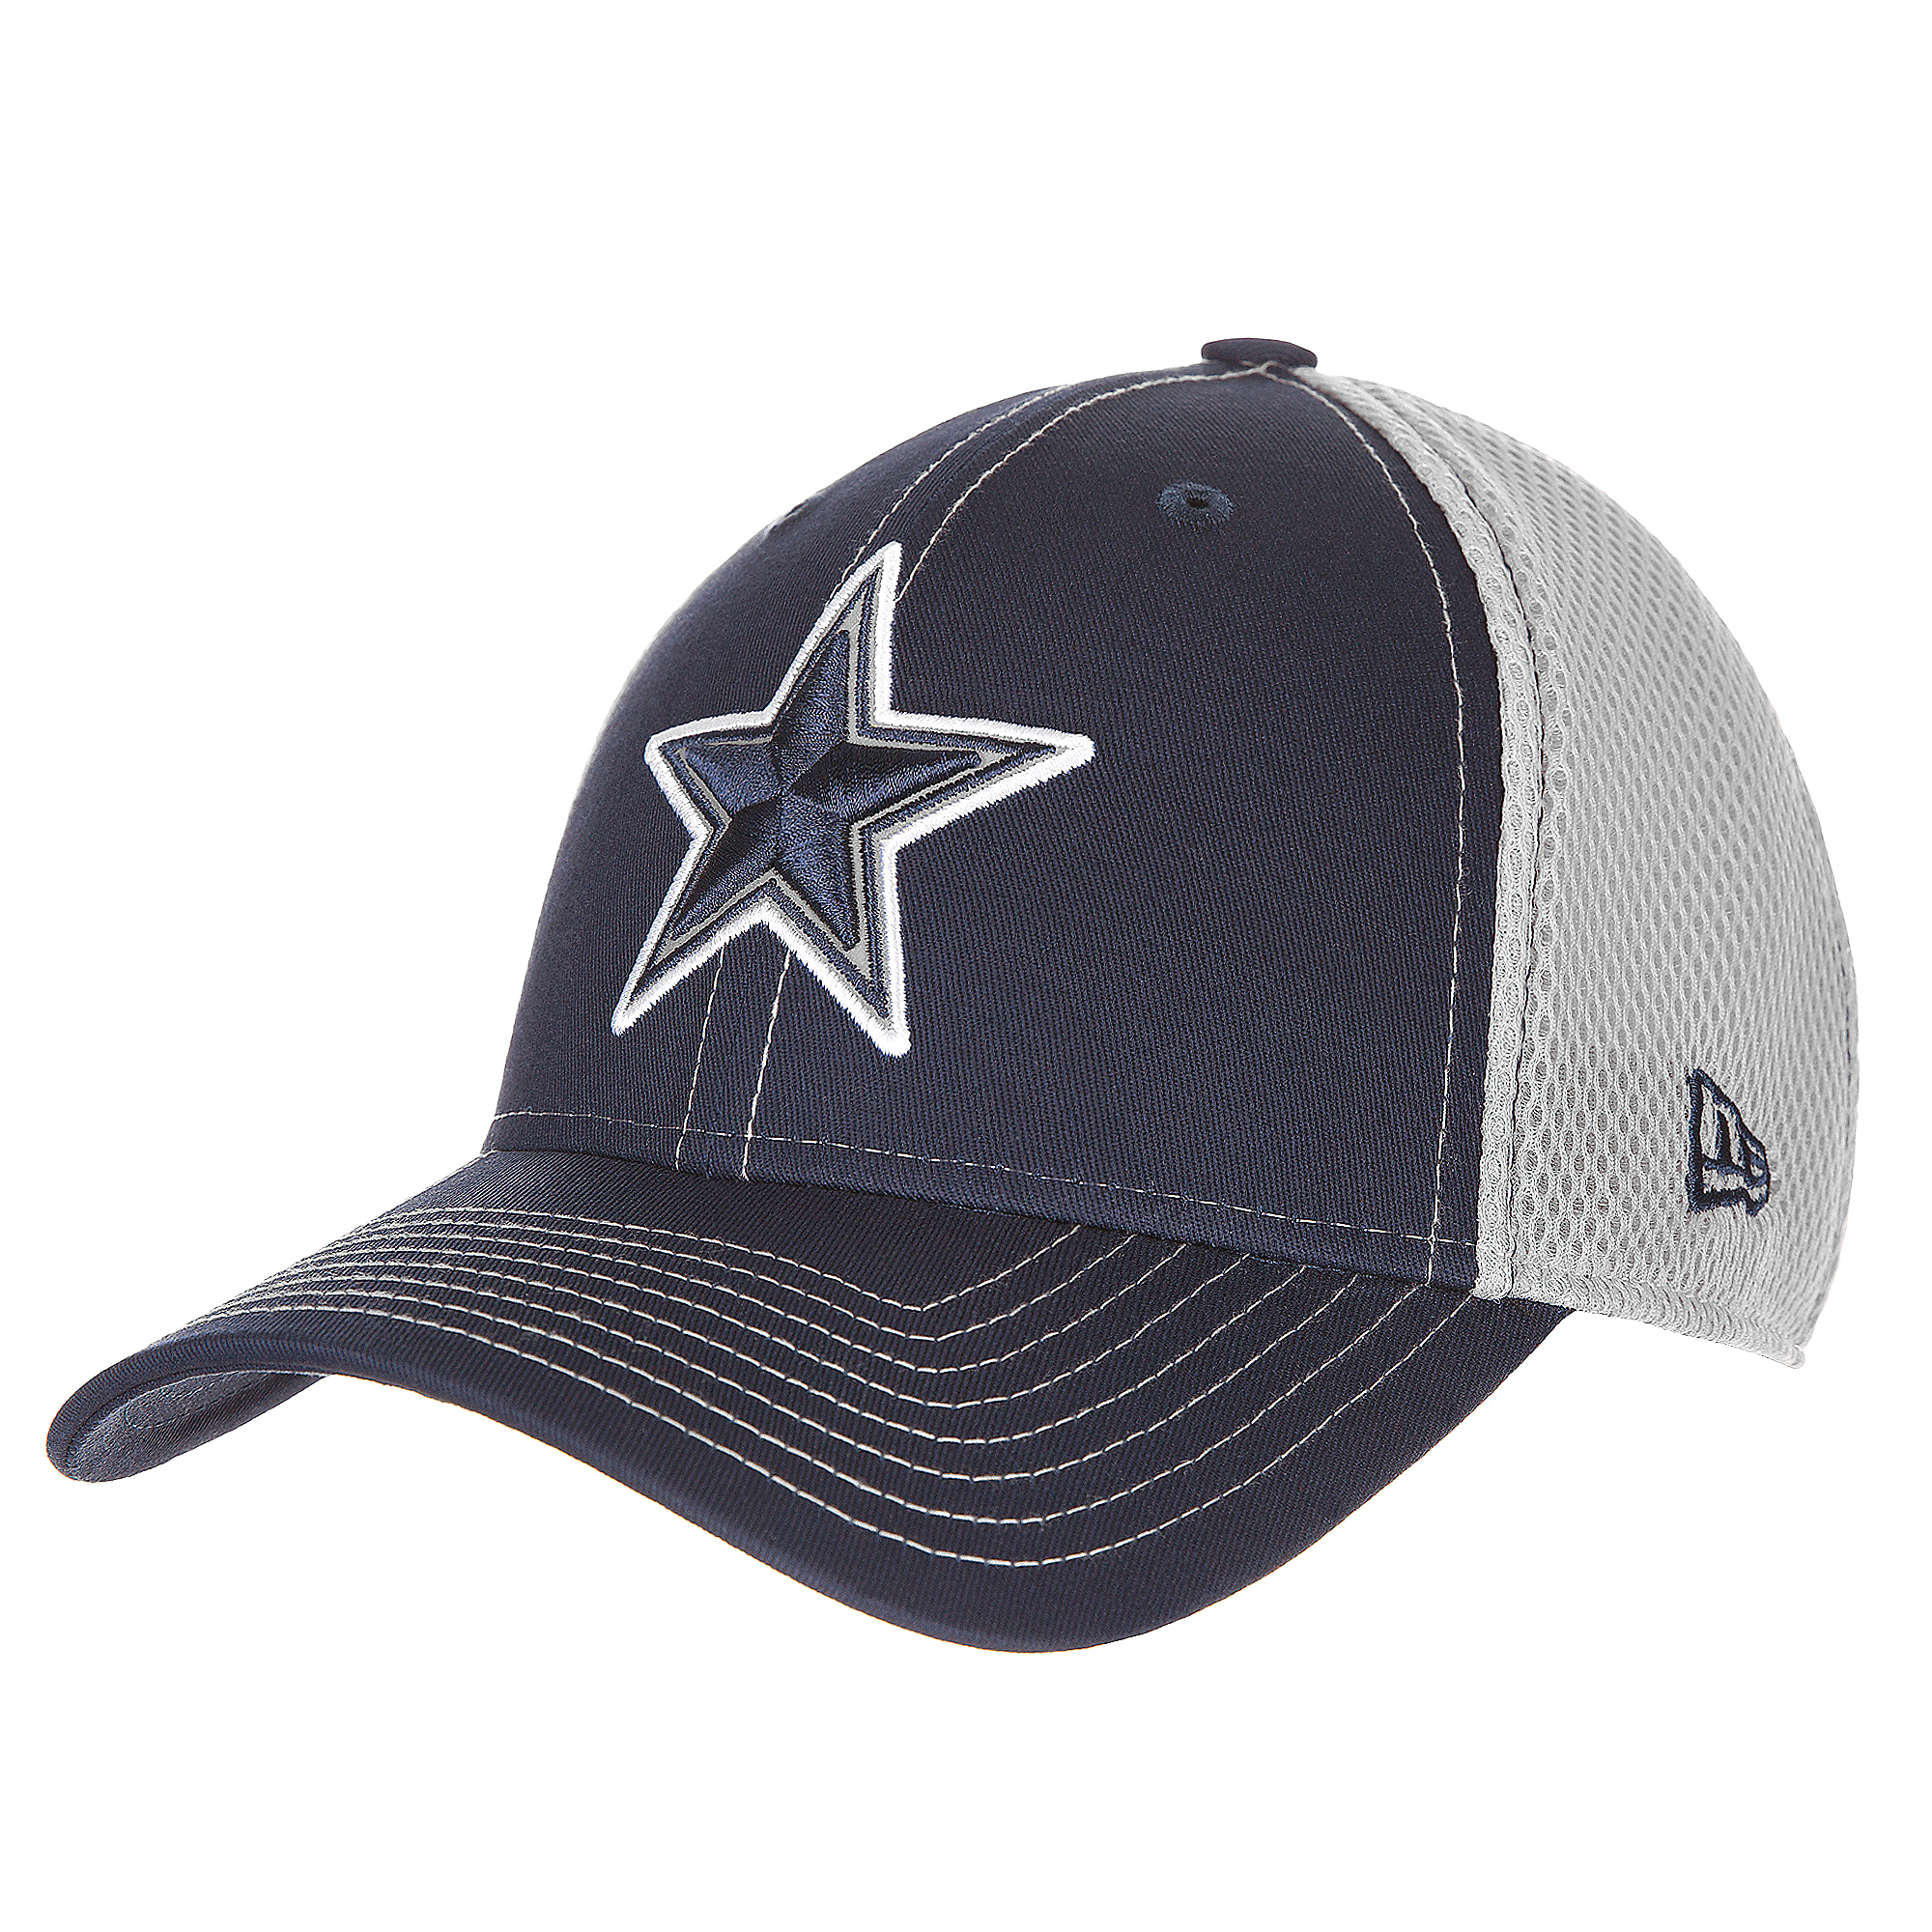 uk dallas cowboys new era pop flect 39thirty cap 4ec27 1e4c4 4e9fe5152